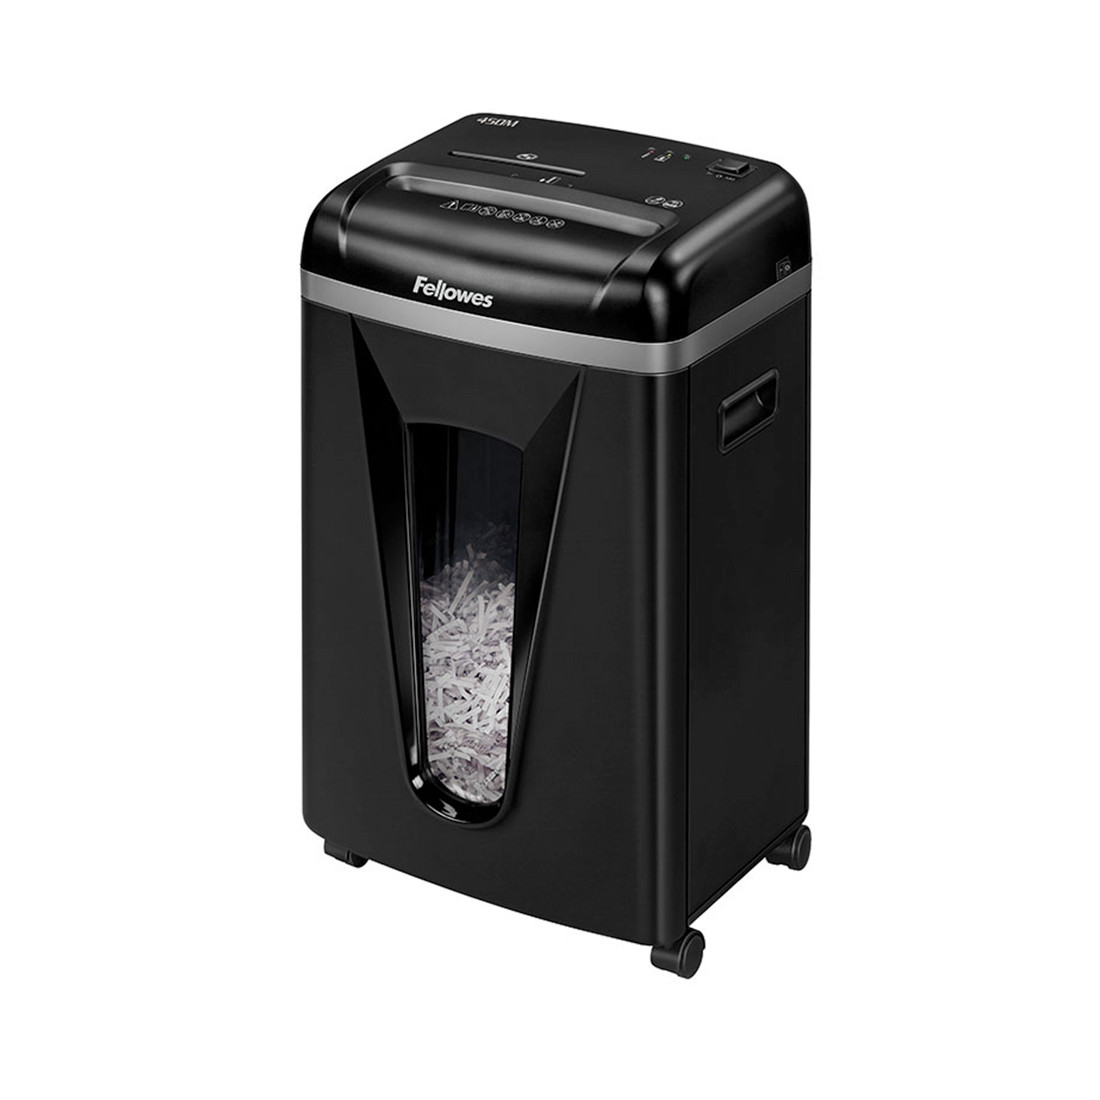 Шредер Fellowes Powershred 450M